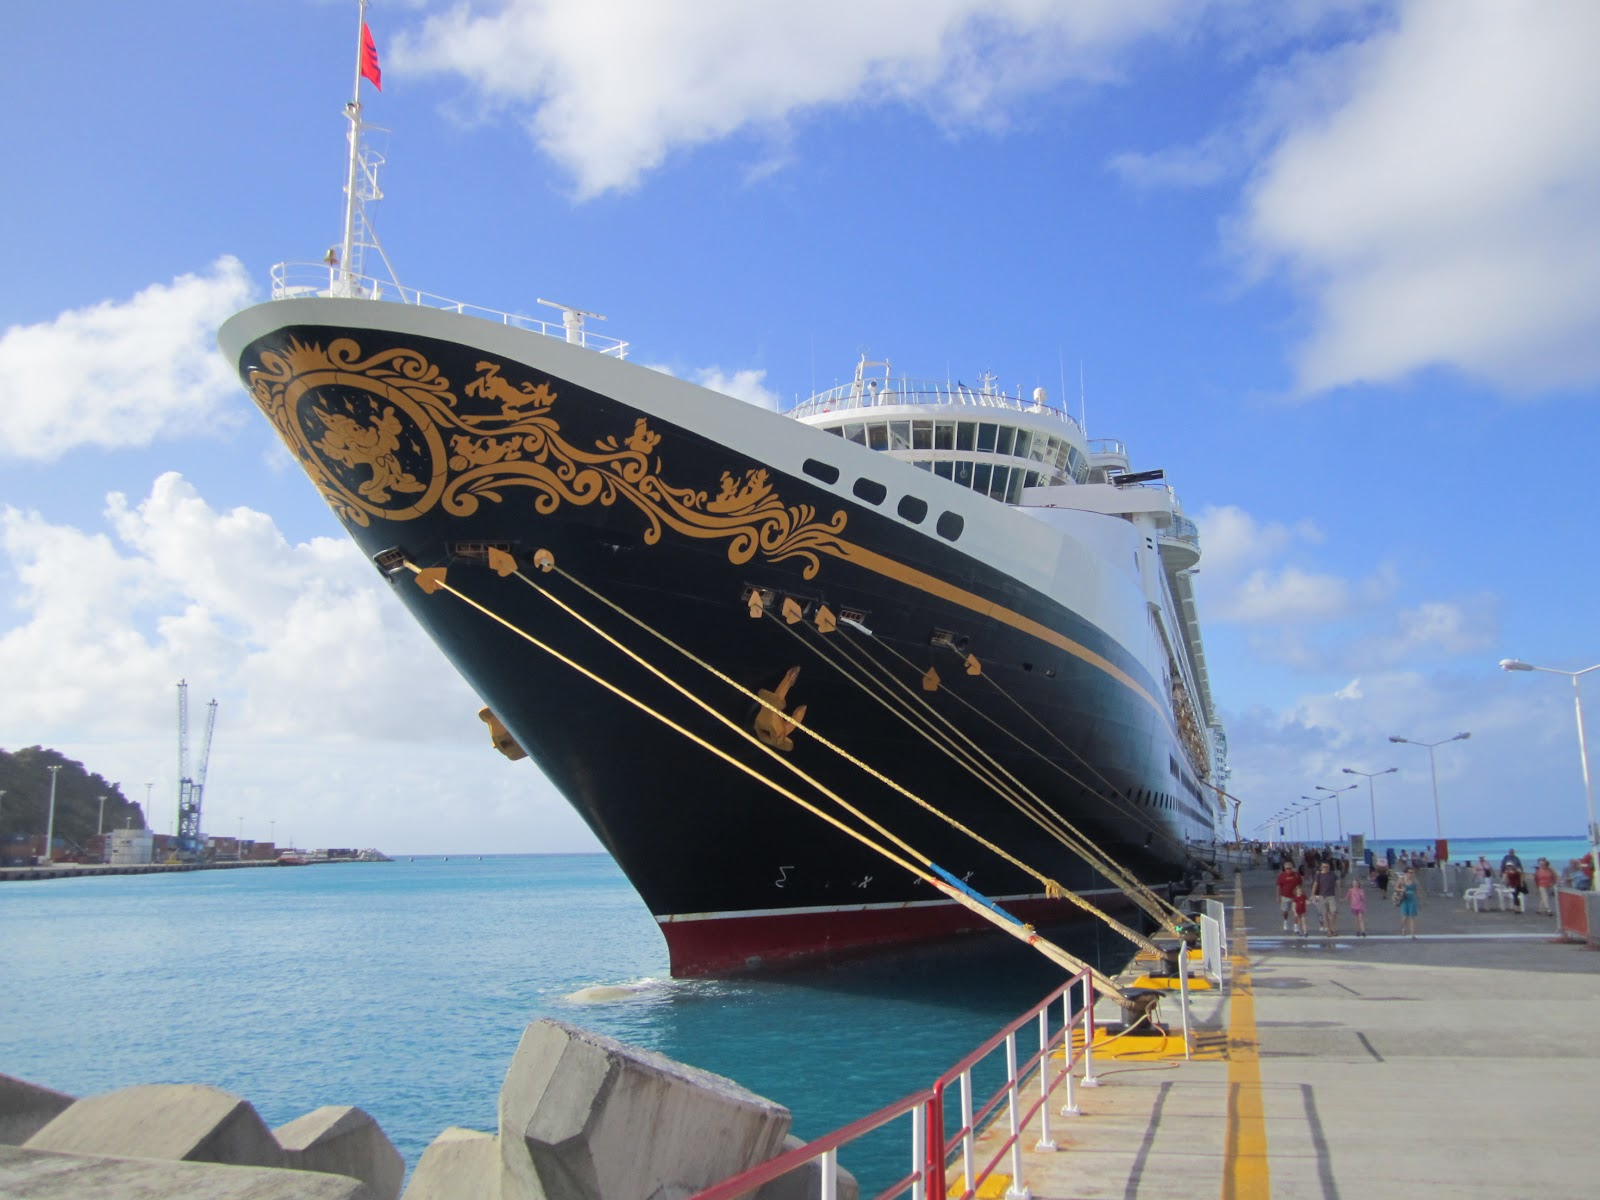 Welcome To Casa Dwyer: These Disney Cruises Infuriate Me